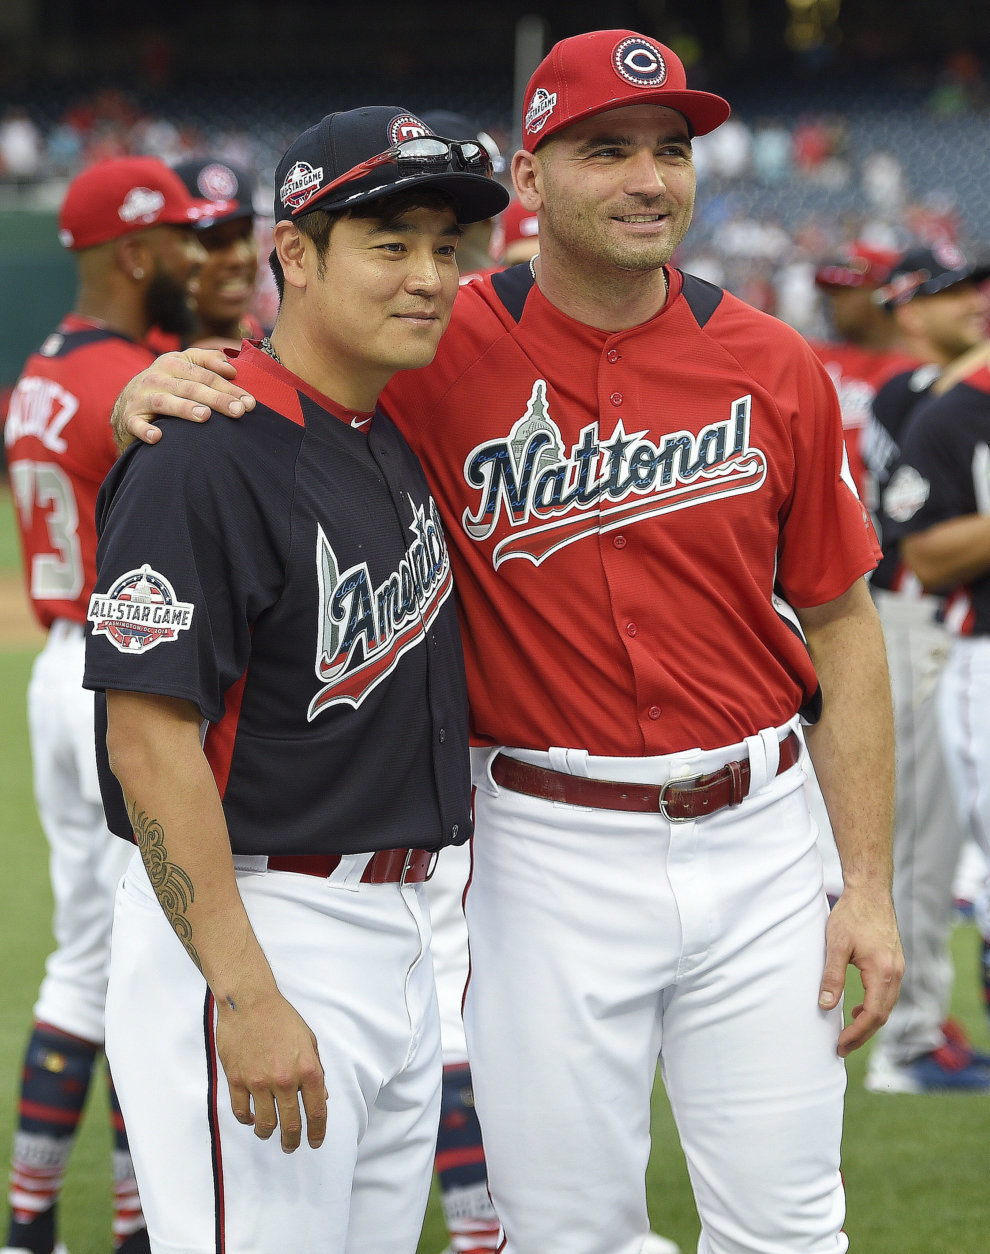 National League, Colorado Rockies Charlie Blackmon, right, embraces American League, Texas Rangers outfielder Shin-Soo Choo ahead of the All-Star Home Run Derby Baseball event, Monday, July 16, 2018, at Nationals Park, in Washington. The 89th MLB baseball All-Star Game will be played Tuesday. (AP Photo/Nick Wass)